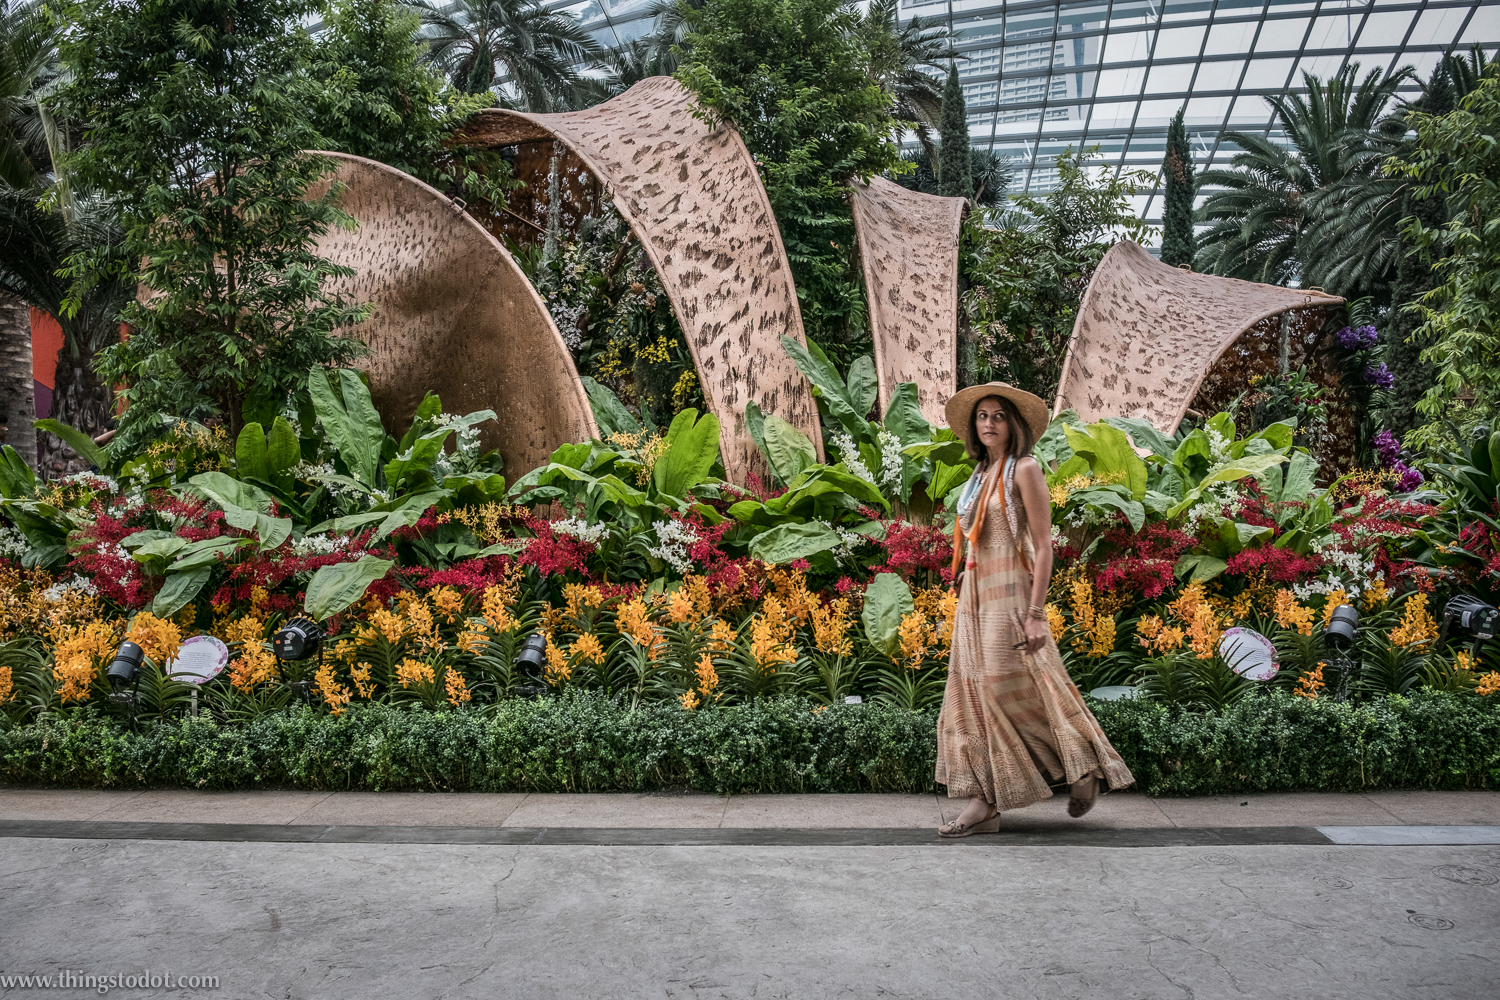 Gardens by the Bay, Singapore. Photo: Aik Beng Chia. Image©www.thingstodot.com.